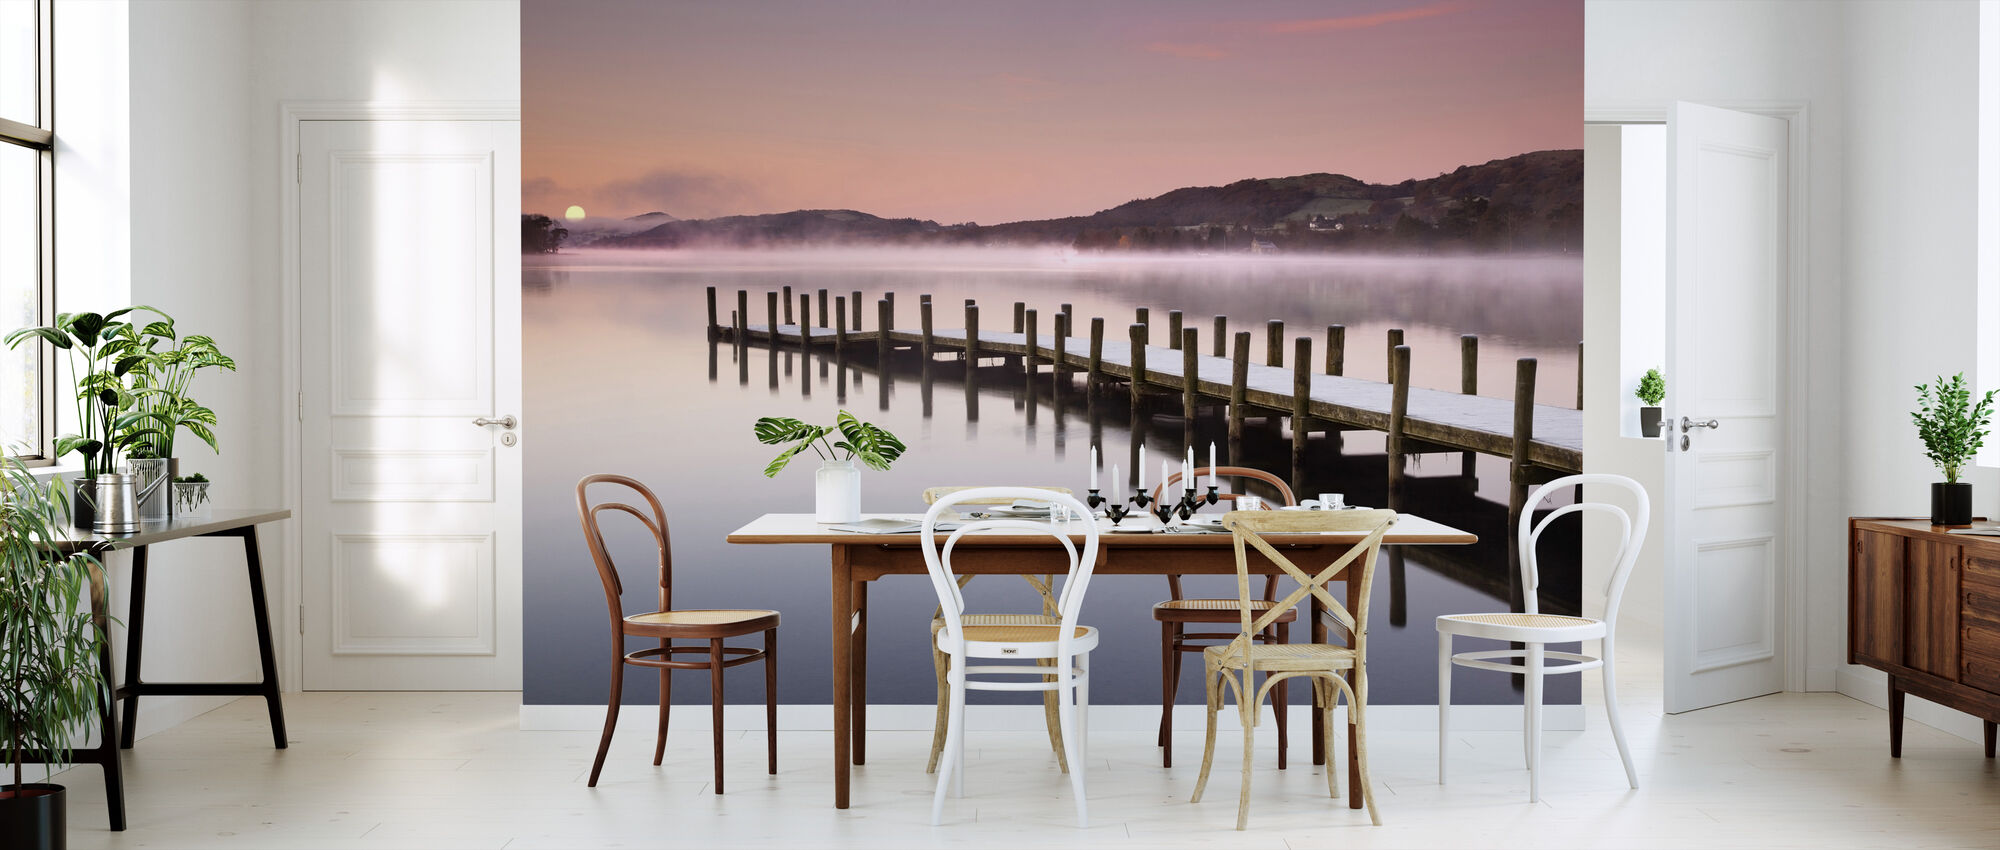 Landing Jetty on Coniston Water - Wallpaper - Kitchen